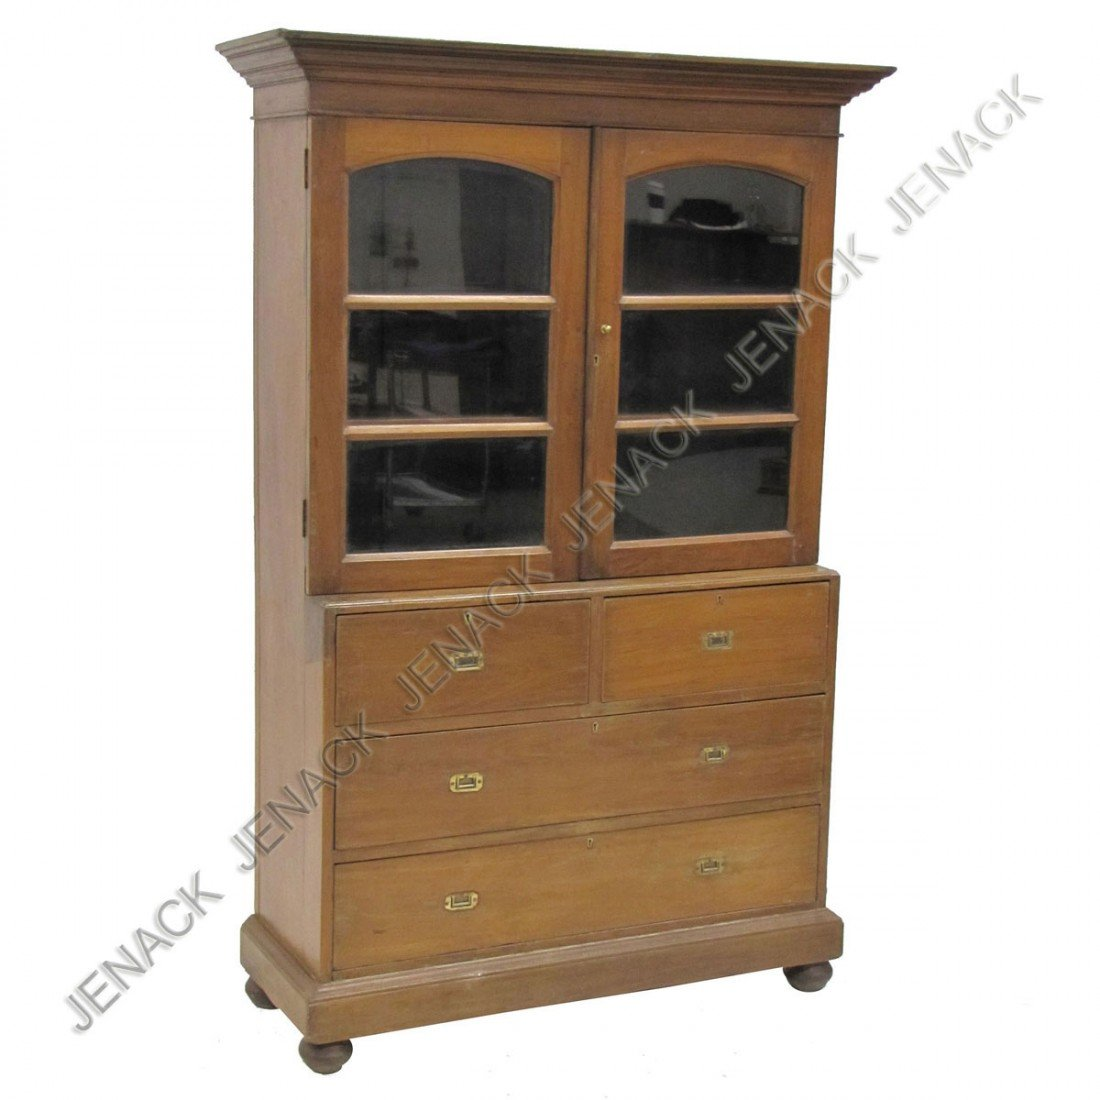 119: ANGLO INDIAN BRASS MOUNTED TEAKWOOD BOOKCASE/CHEST